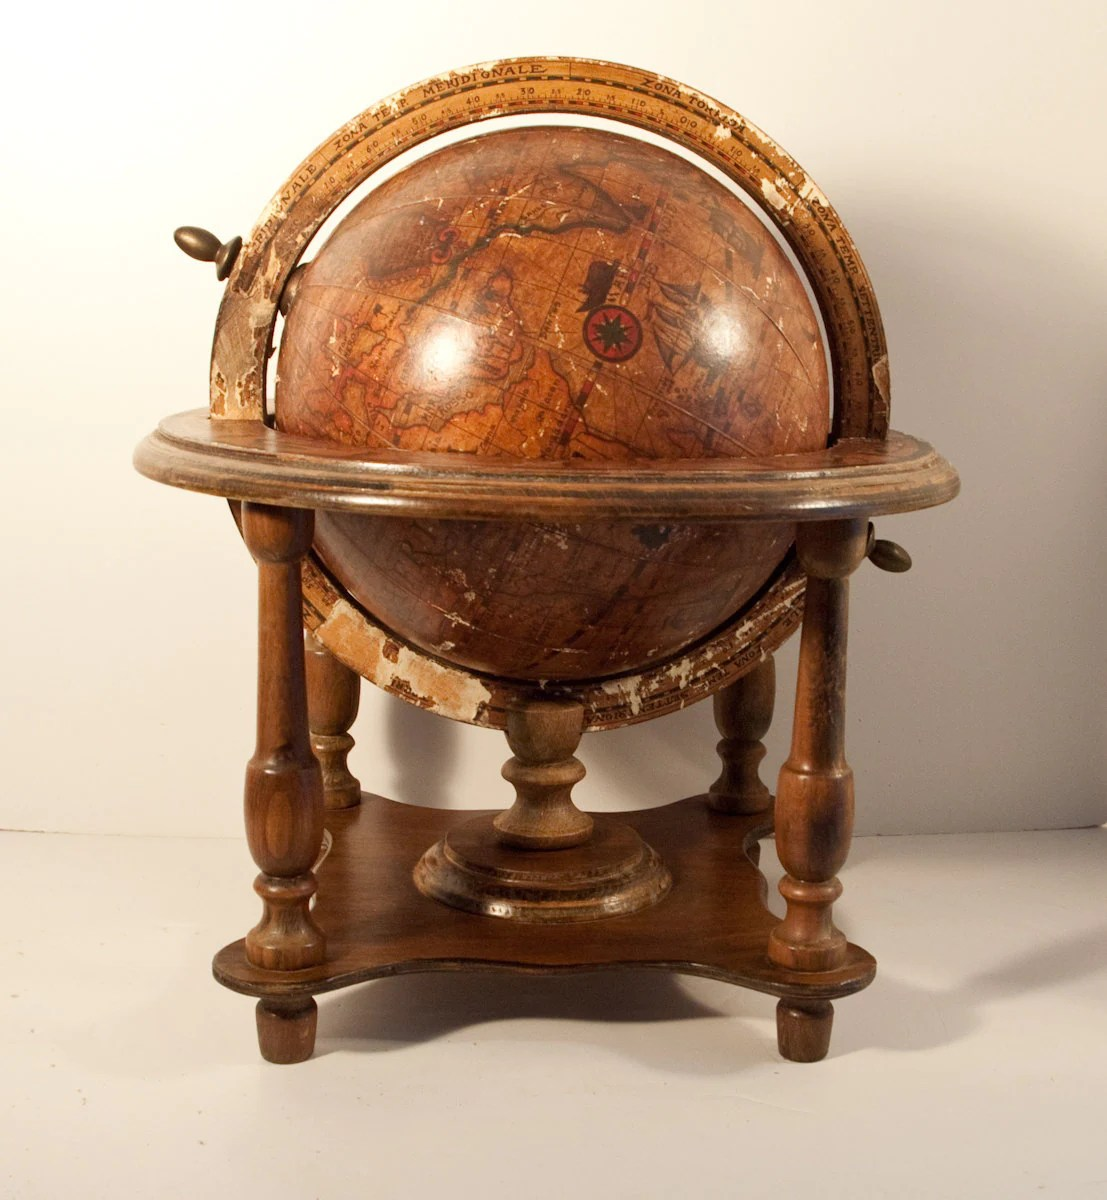 Steampunk Furniture For Sale Large Olde World Globe Wooden Stand Steampunk Furniture